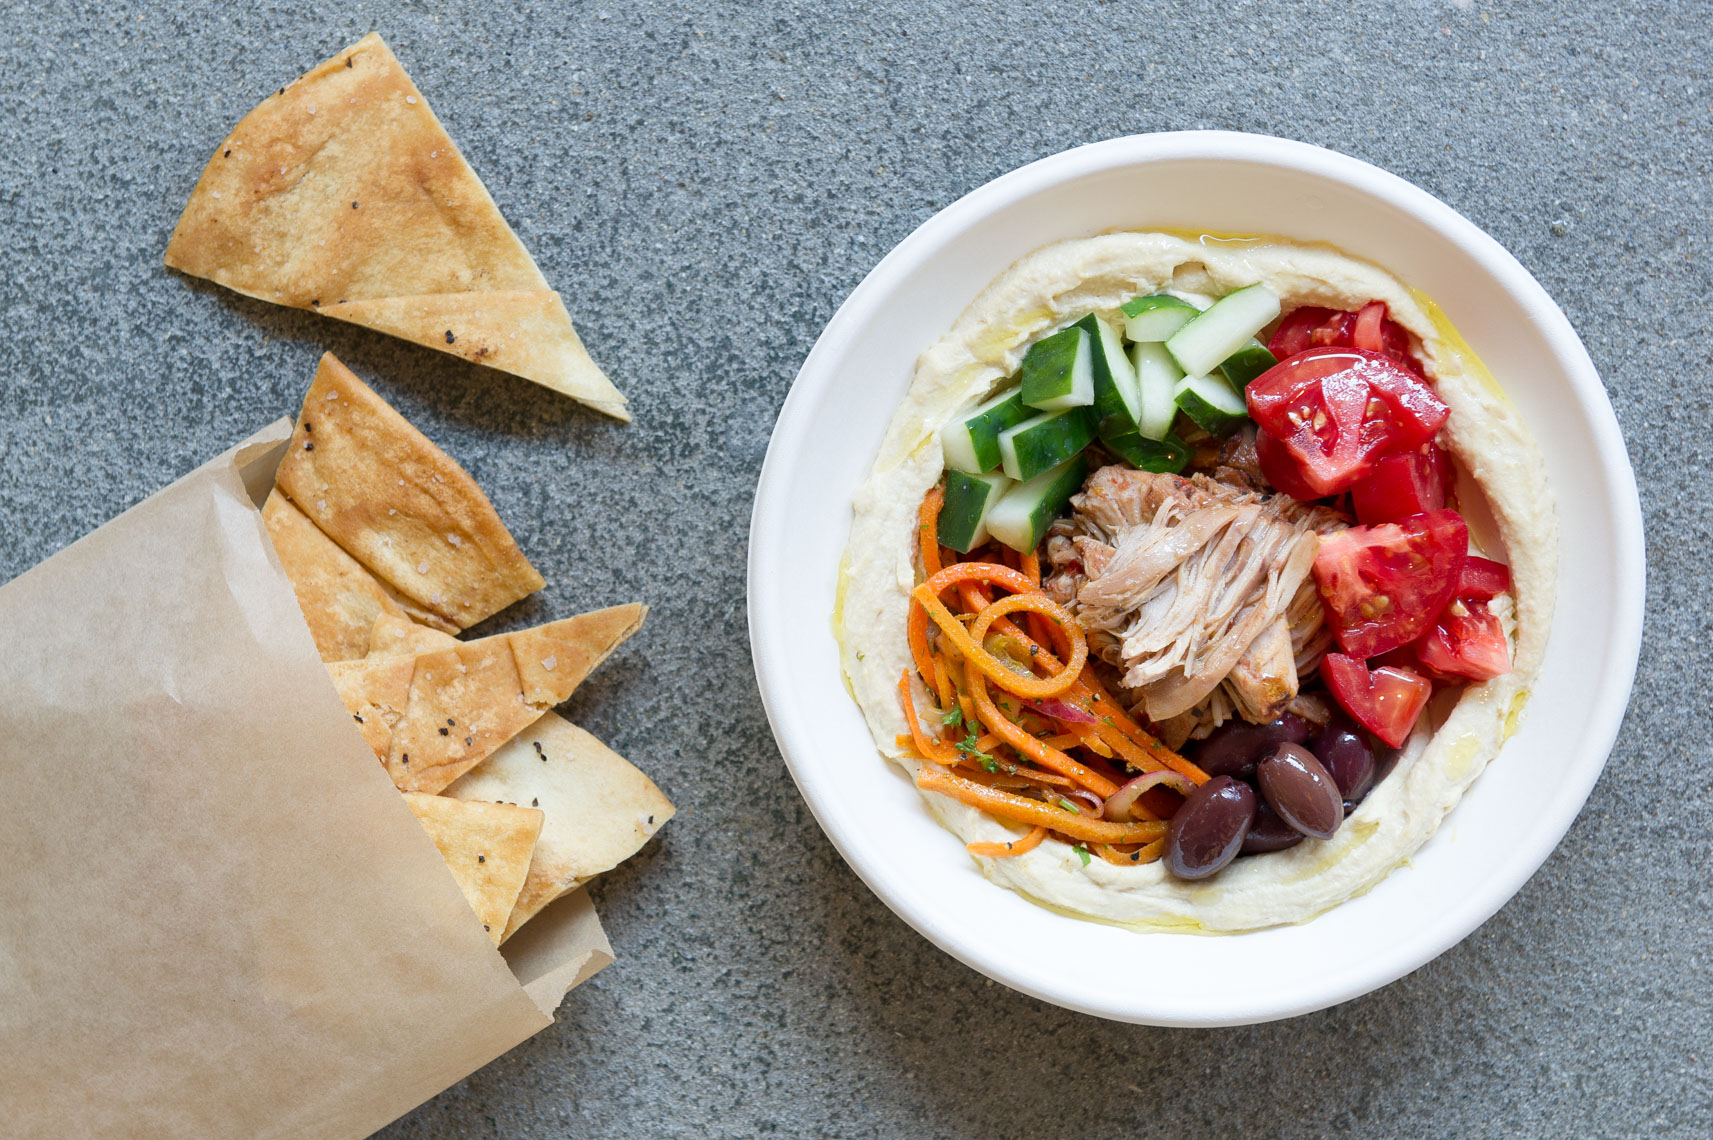 Photo by Morgan Ione Yeager, NYC Food photographer, Boston Food Photographer, Tahaza Hummus Kitchen, Fast Casual, advertising food photography